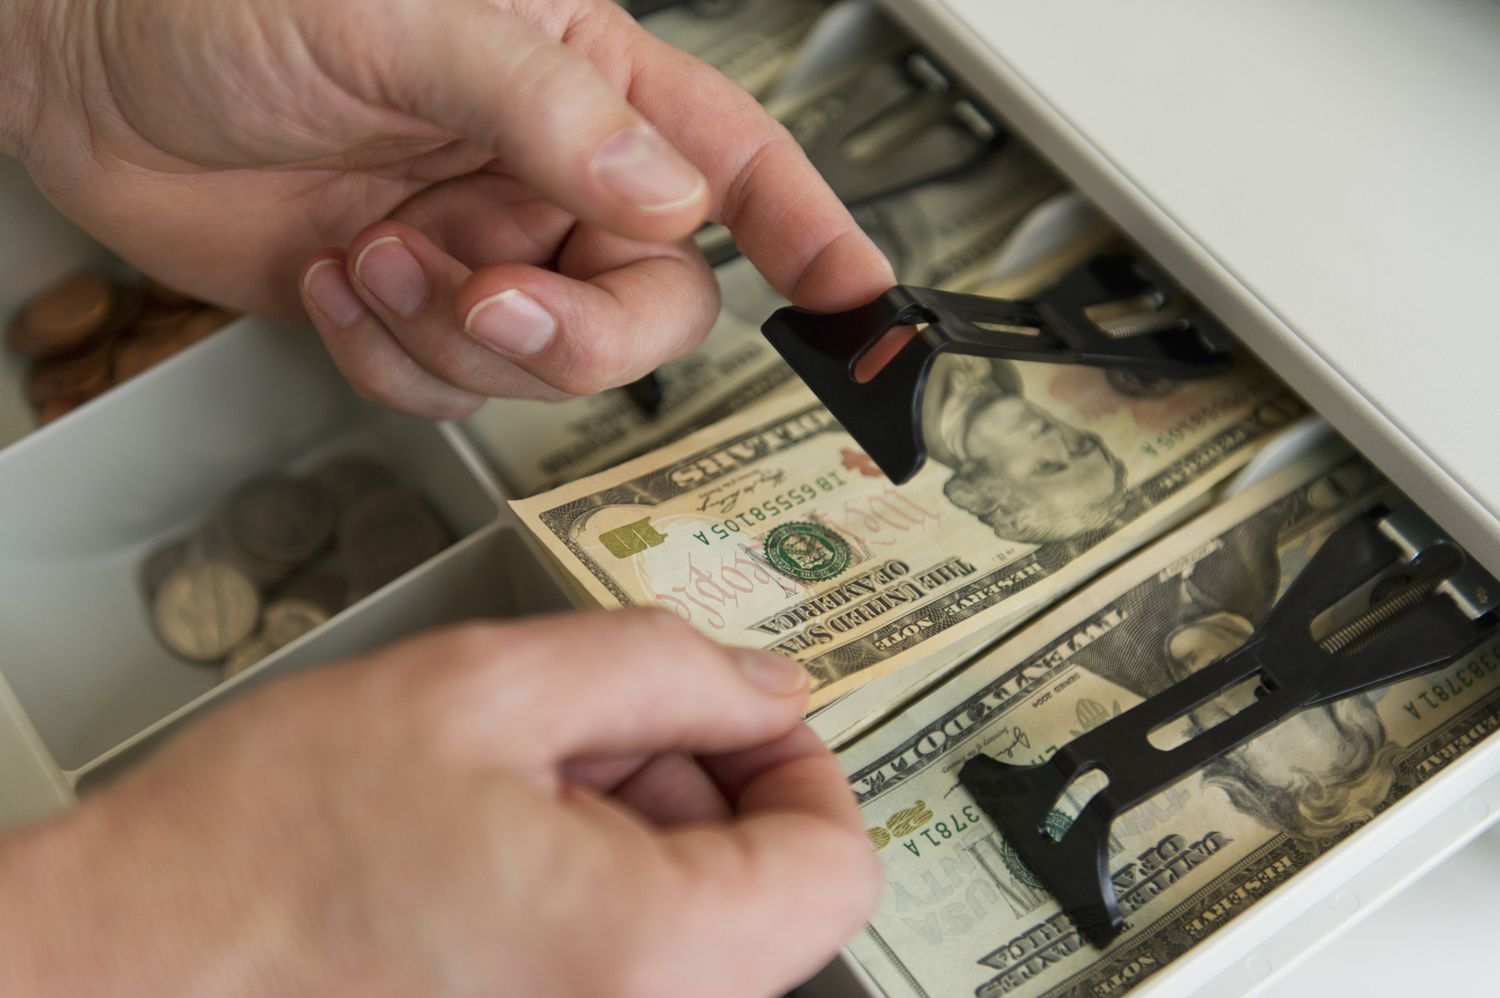 how much money should i keep in the cash register